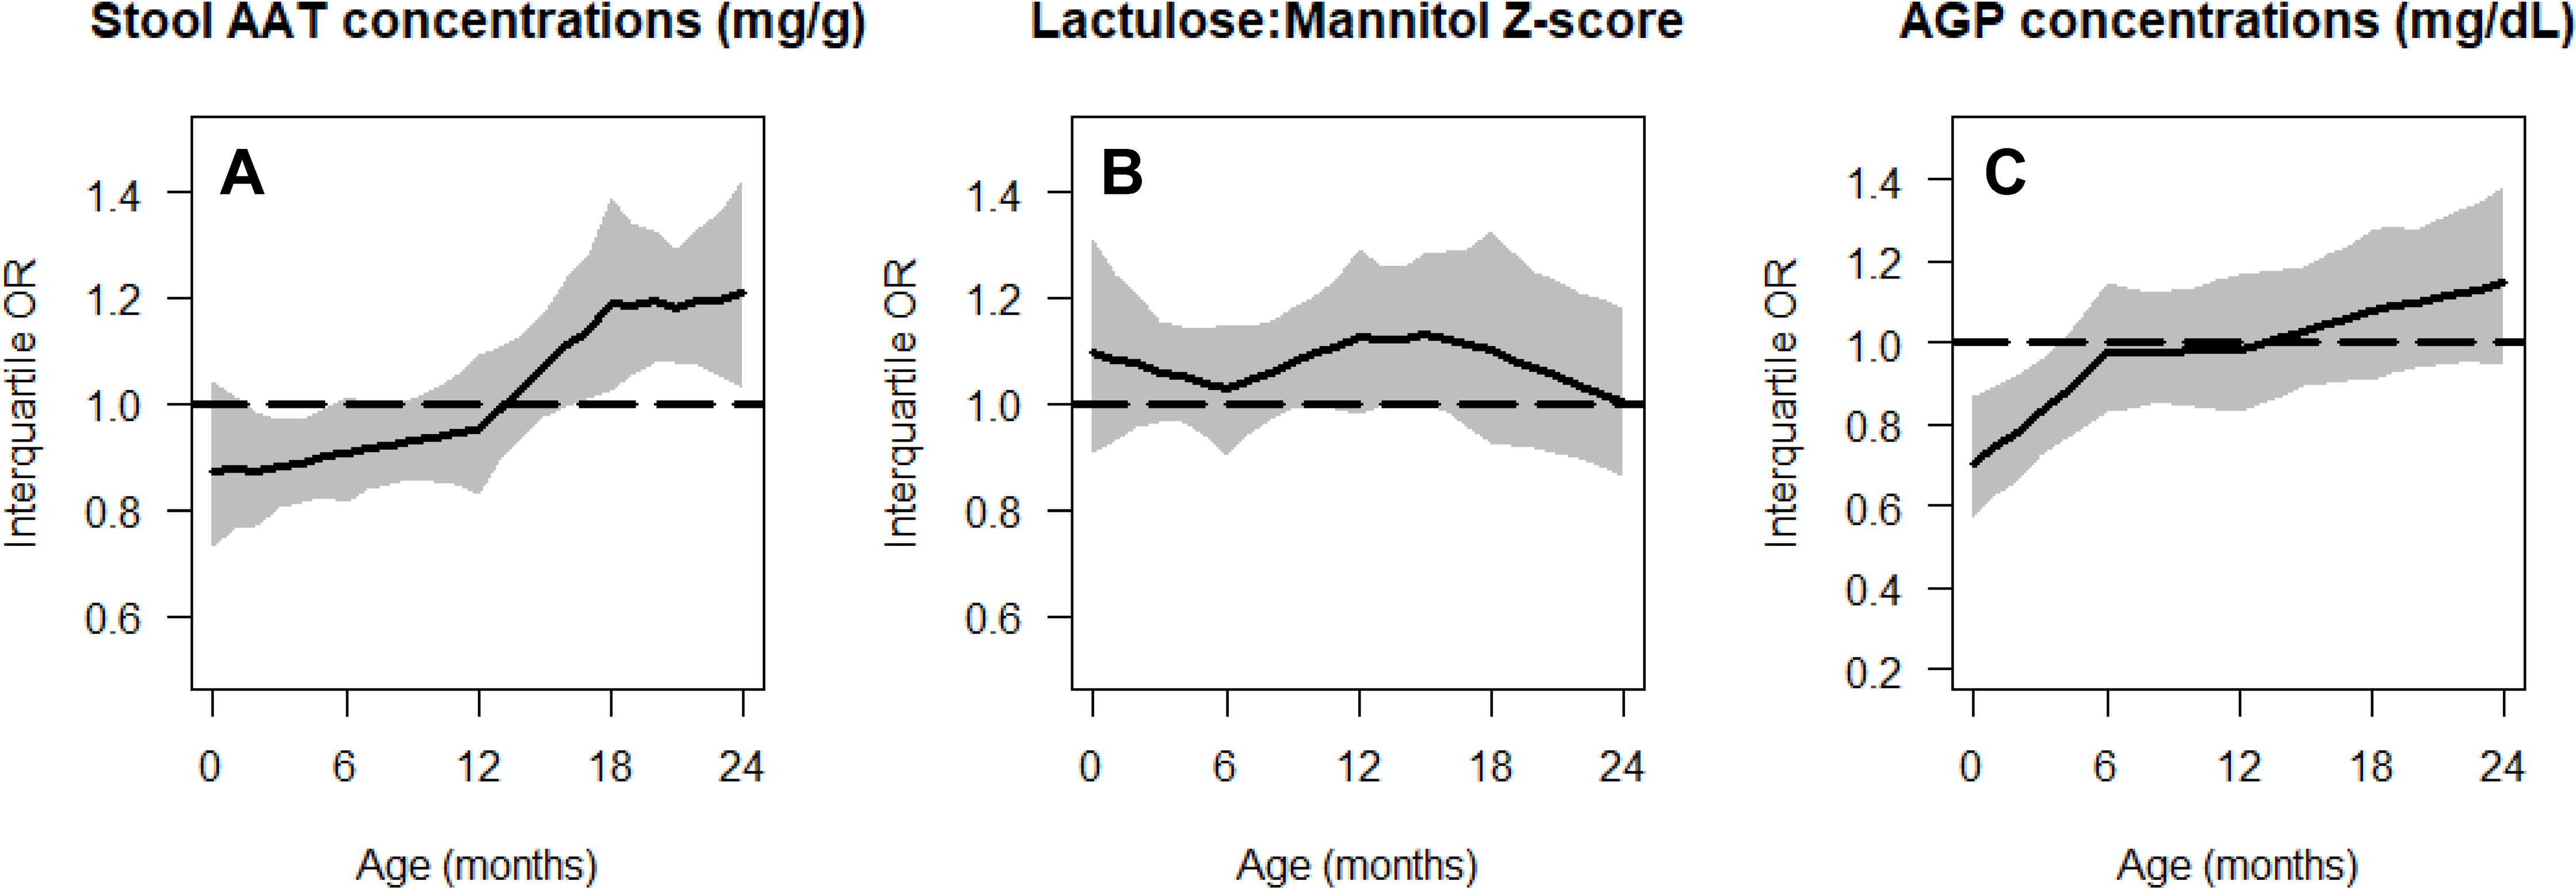 Age-specific cumulative odds ratios of being in a lower length-for-age category (at risk or stunted) for gut inflammation and permeability biomarkers.